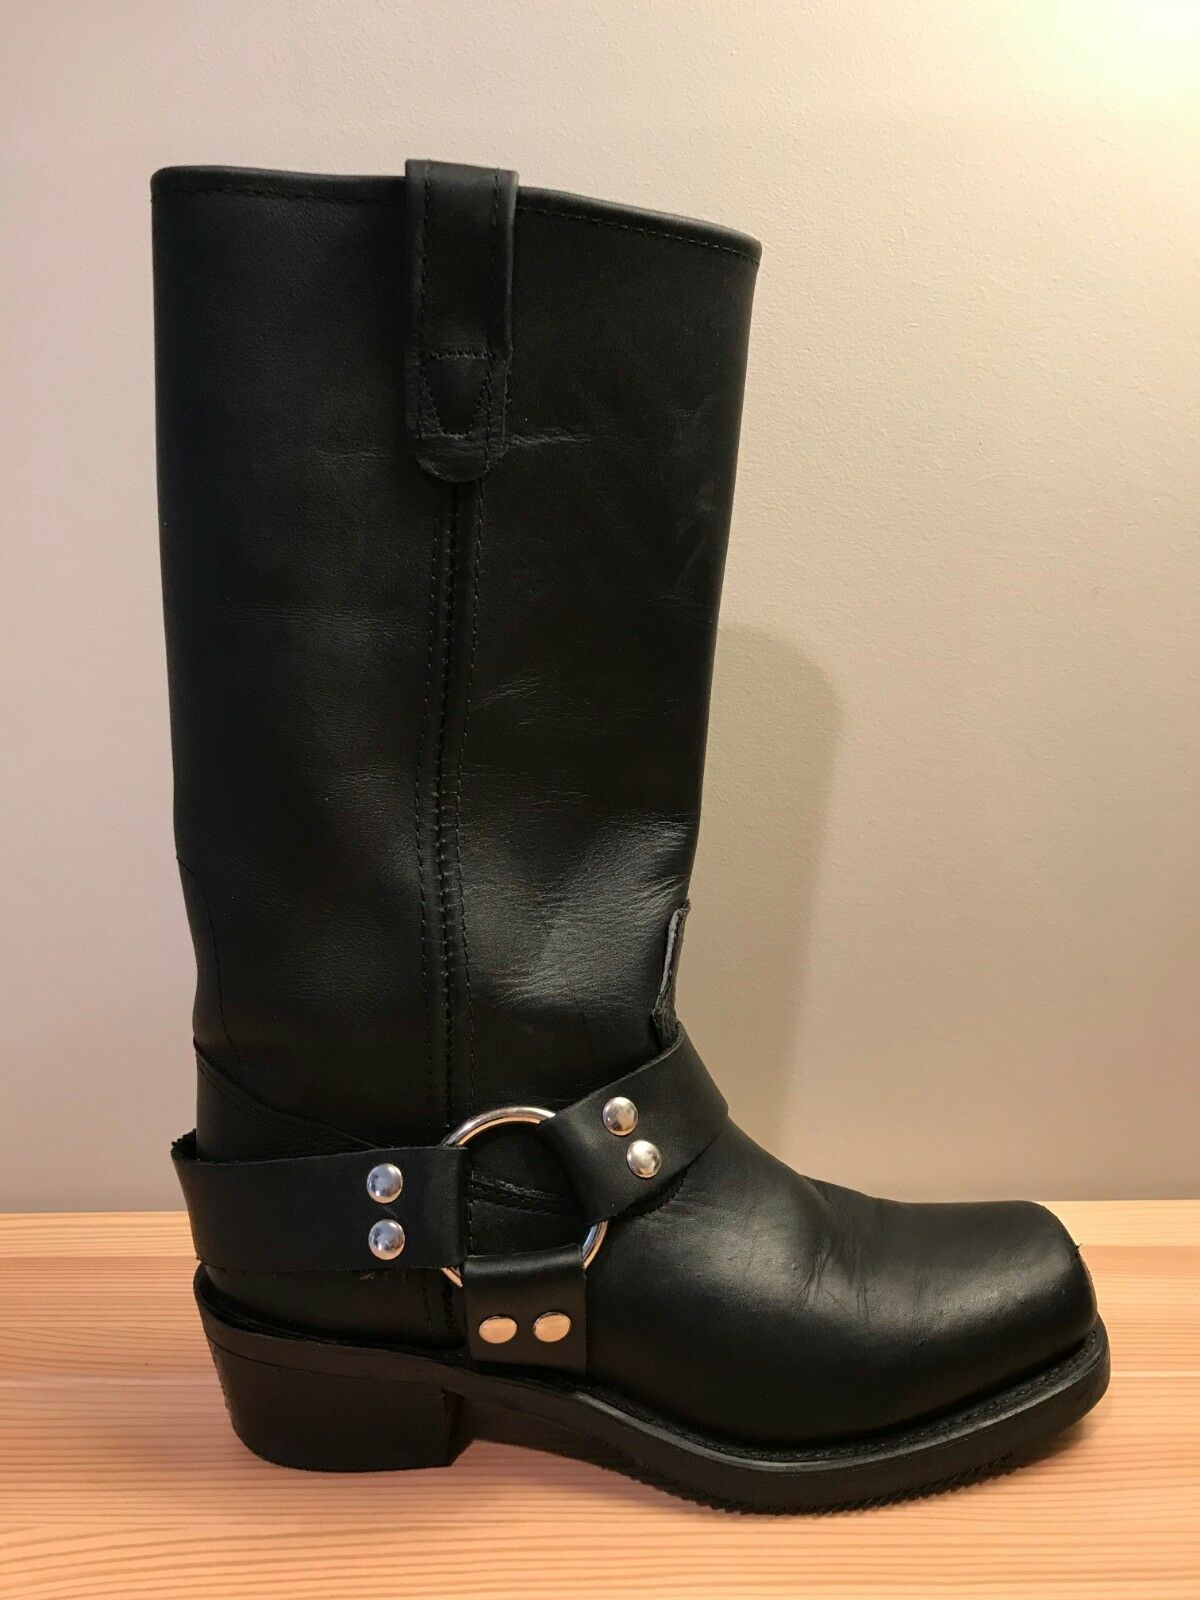 Double Double Double H 5008 Harness Black Leather Pull On Square Toe Boots Women's Size 7 N 434084